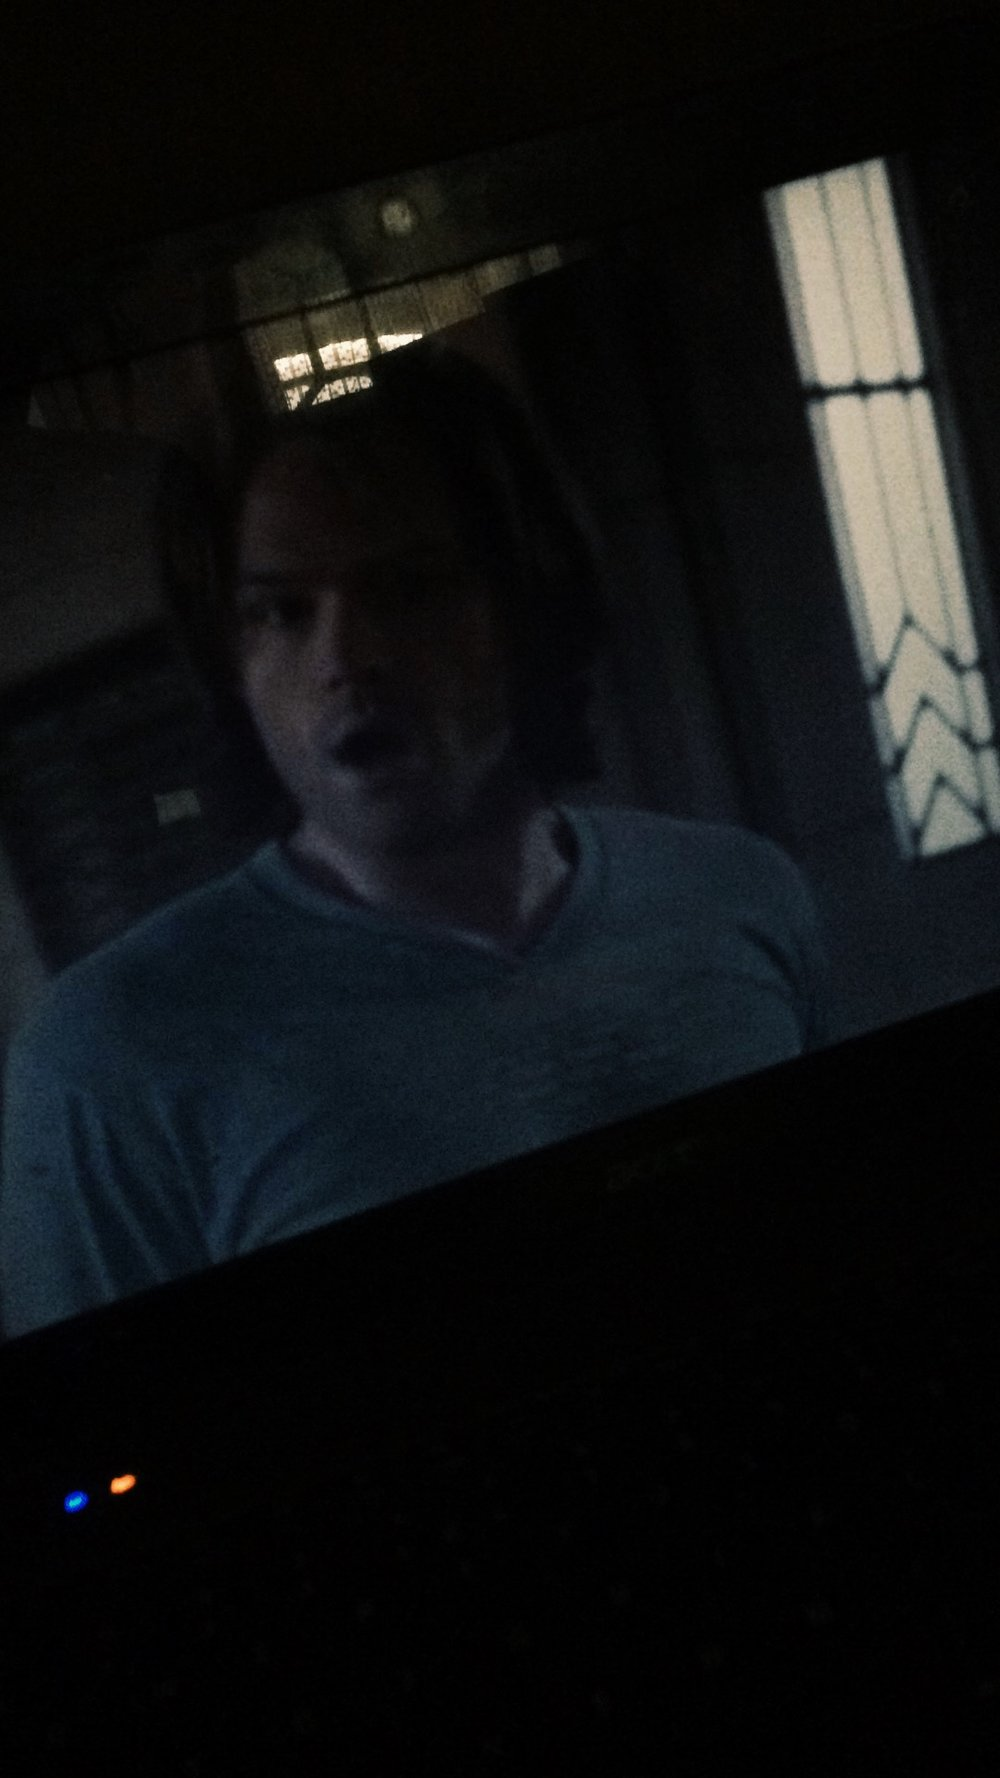 - I got to catch up on Supernatural ! My faux-cousin Nathanael had the seasons saved. Go Sam & Dean